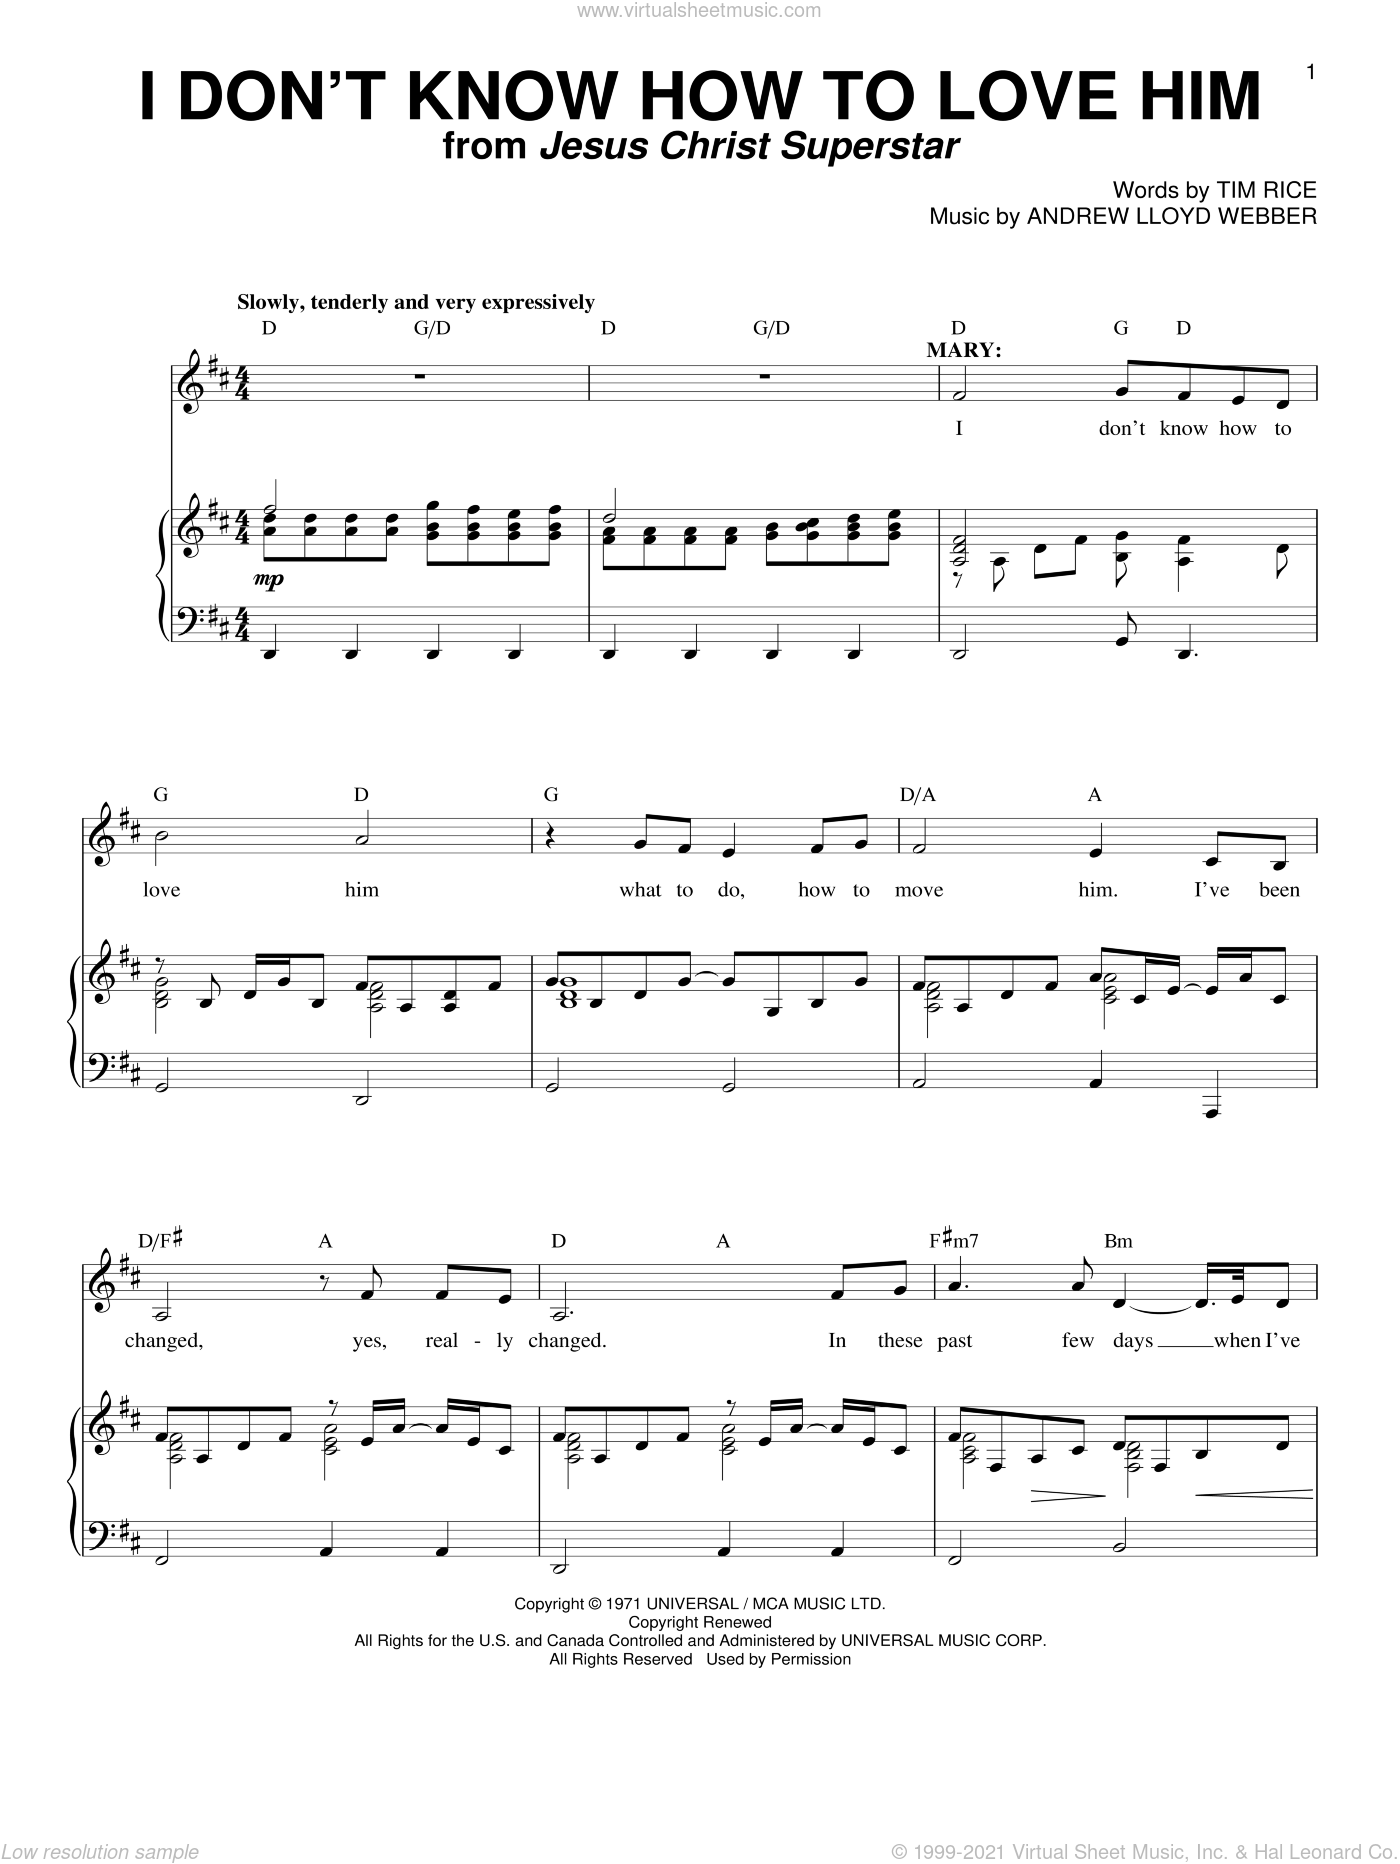 I Don't Know How To Love Him sheet music for voice and piano by Tim Rice